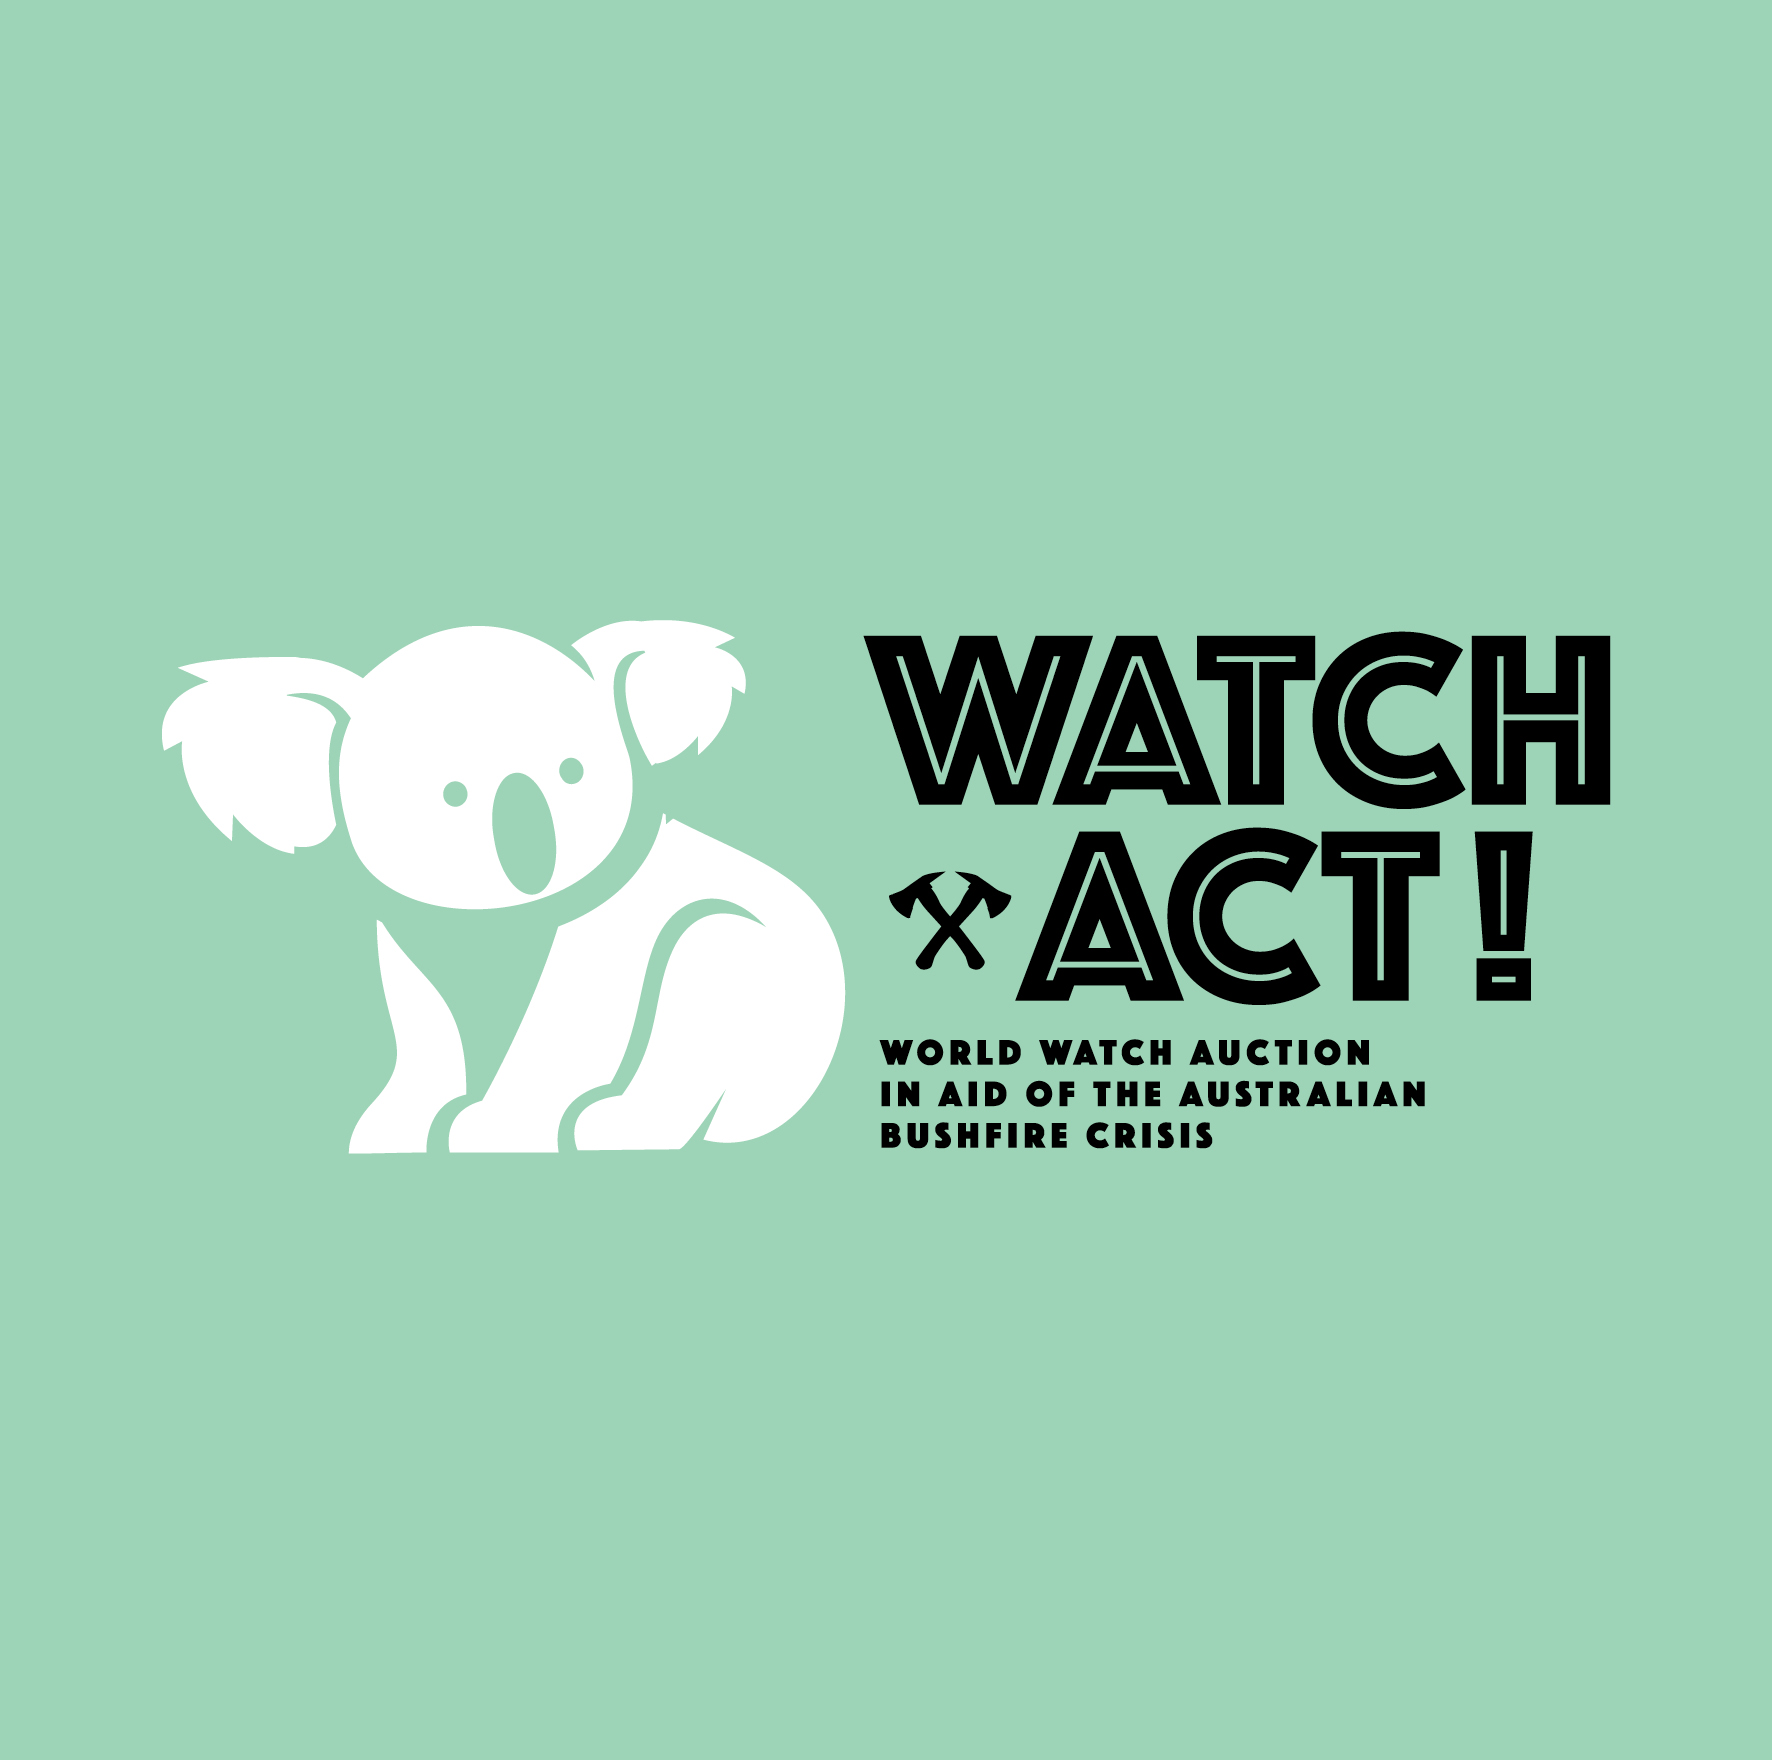 Watch & Act! World Watch Auction Wrap Party to be held in Melbourne, limited tickets and a T-shirt now available here